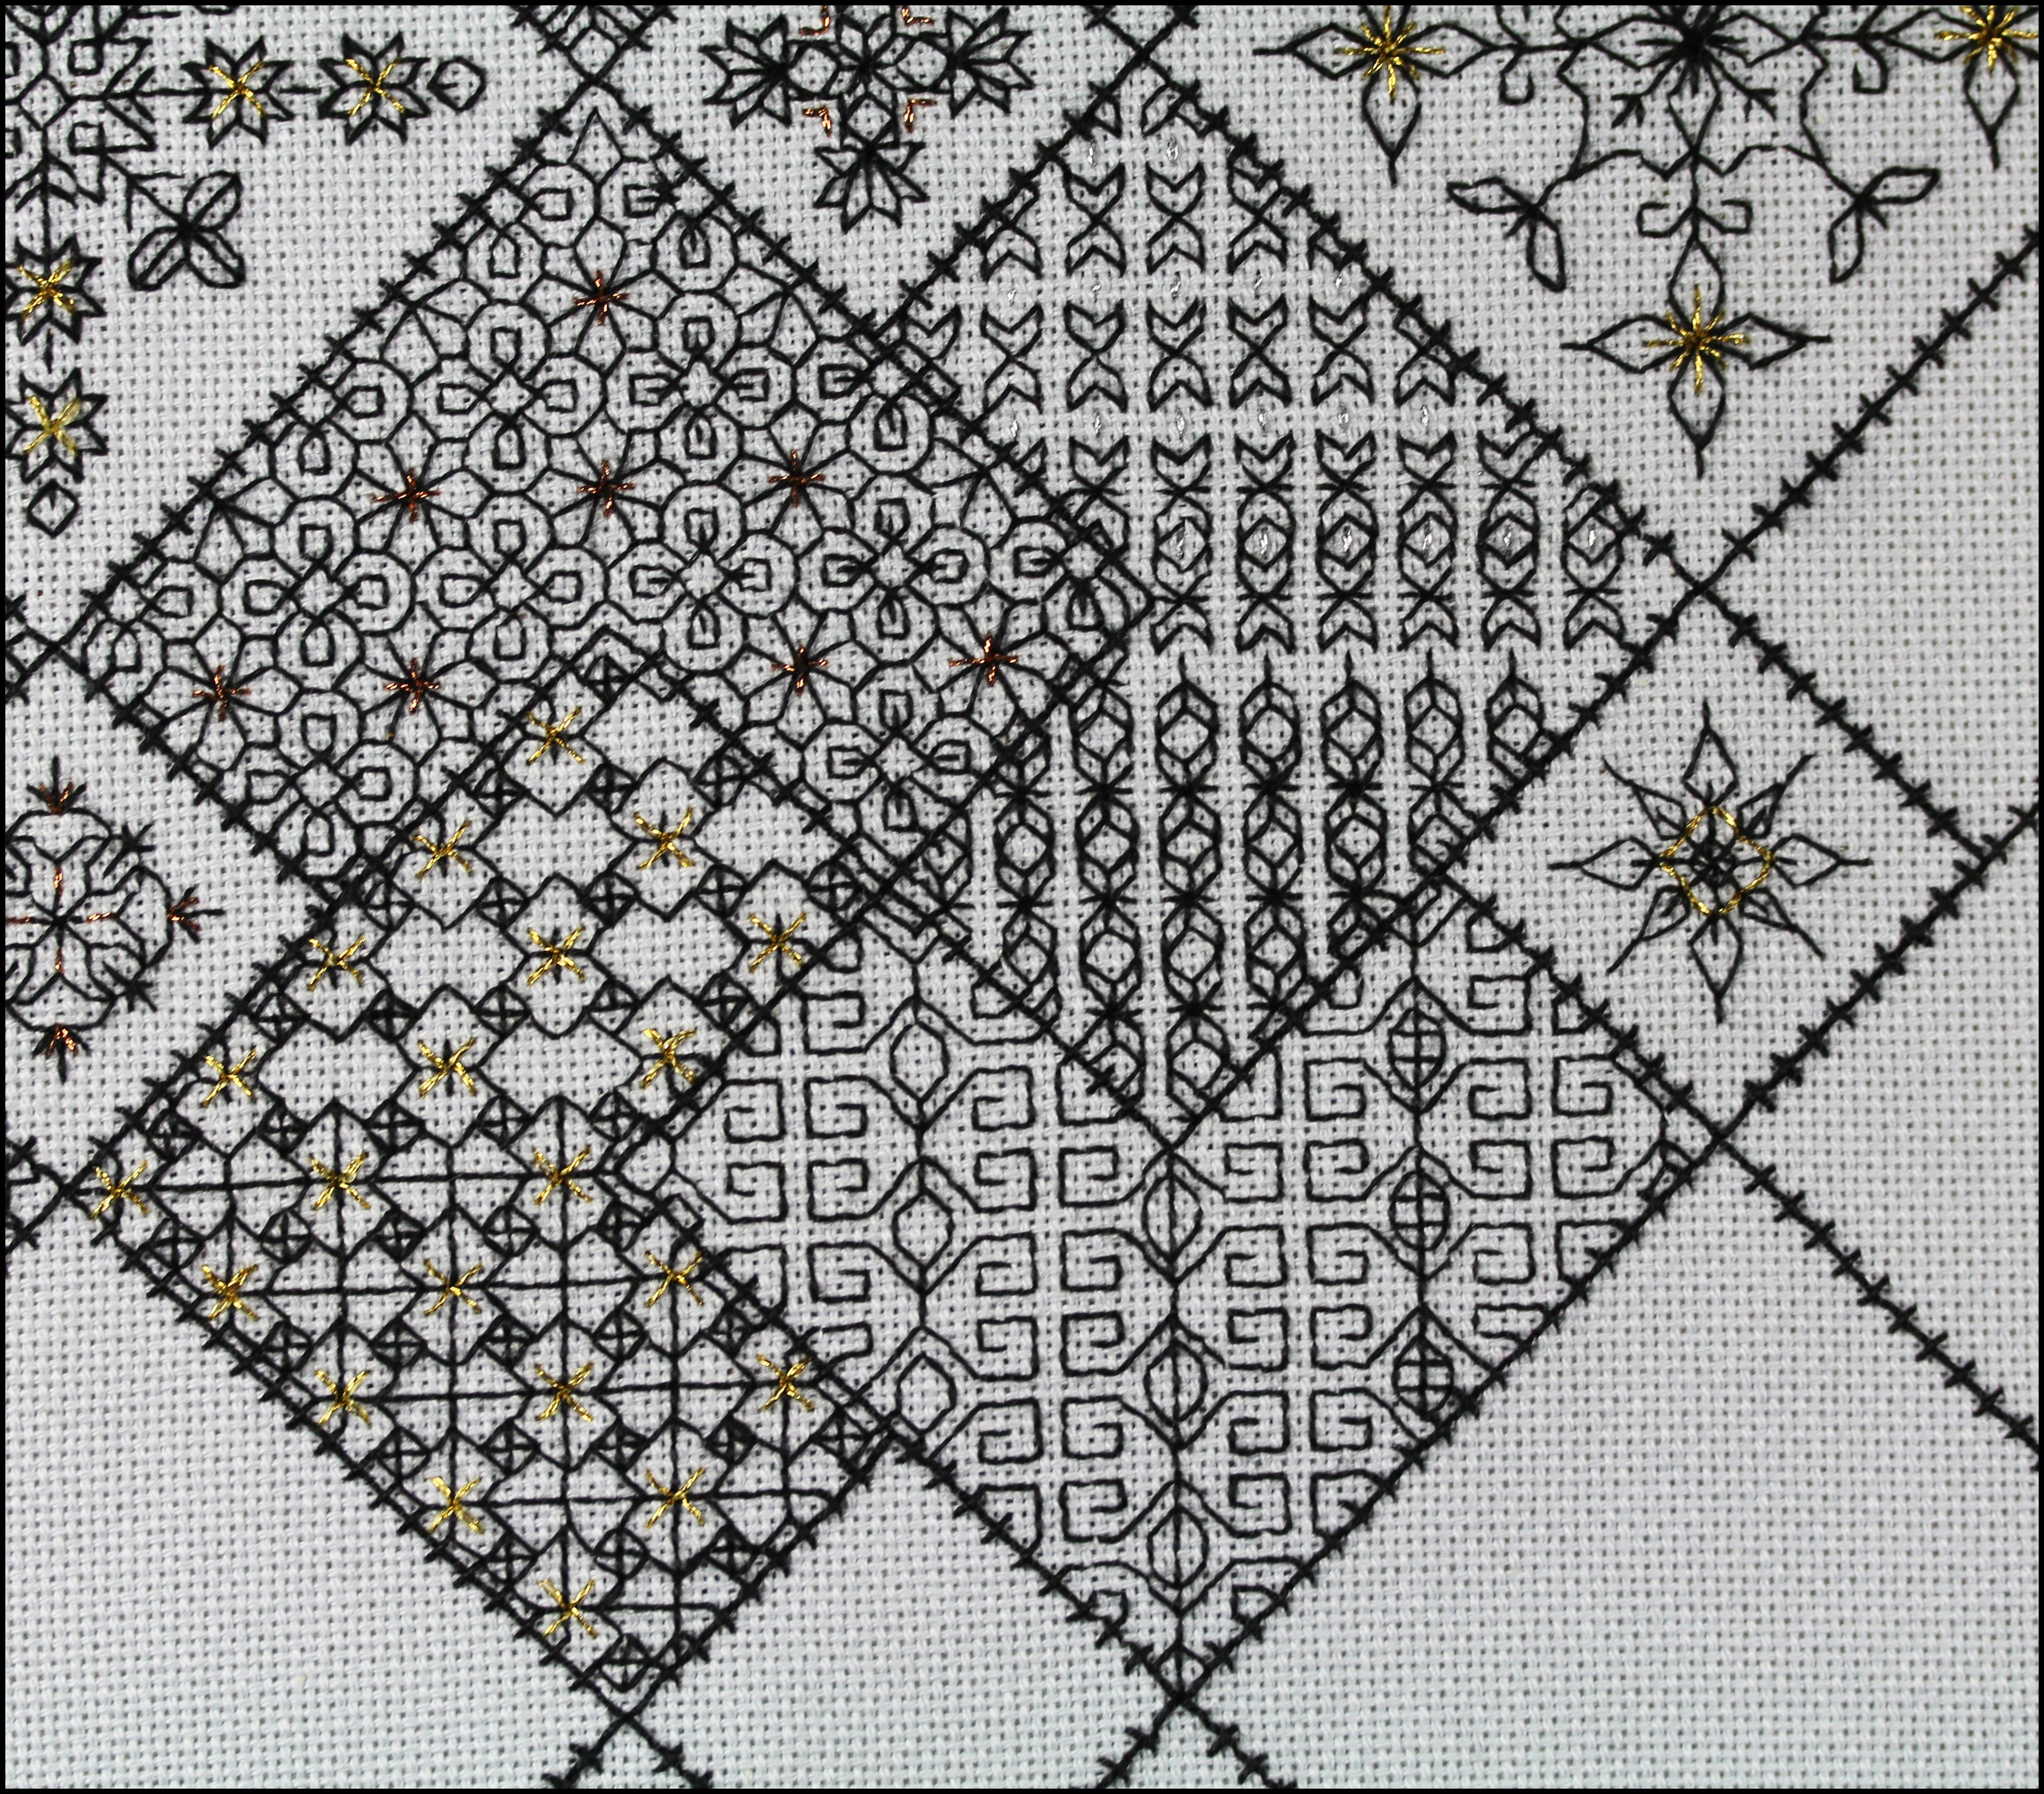 Block 10 save the stitches using metallic threads add a block 10 save the stitches using metallic threads add a sparkle to blackwork bankloansurffo Gallery